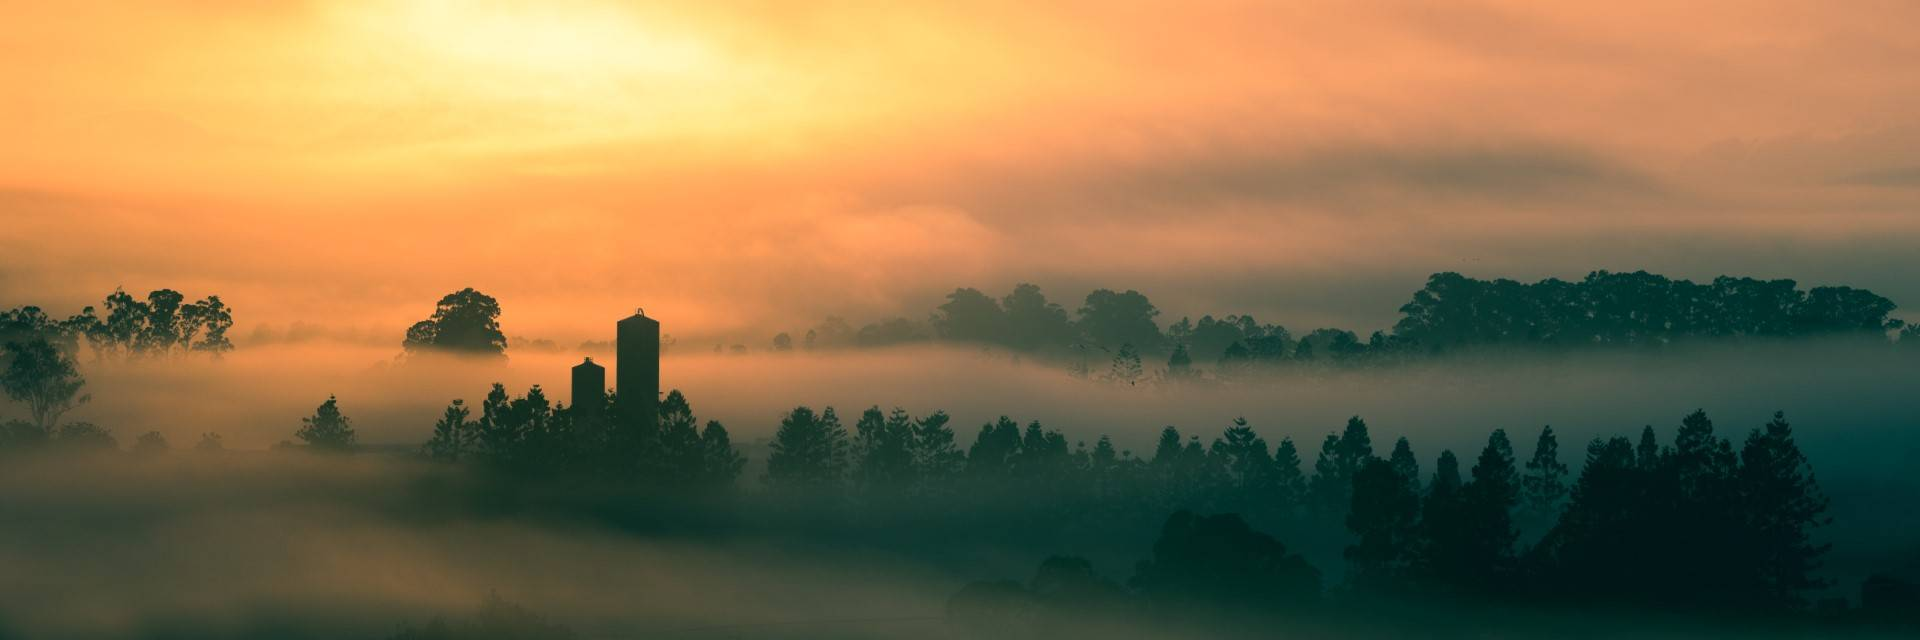 Gallo's Dairy in the morning mist - Brendan MacRae Photography